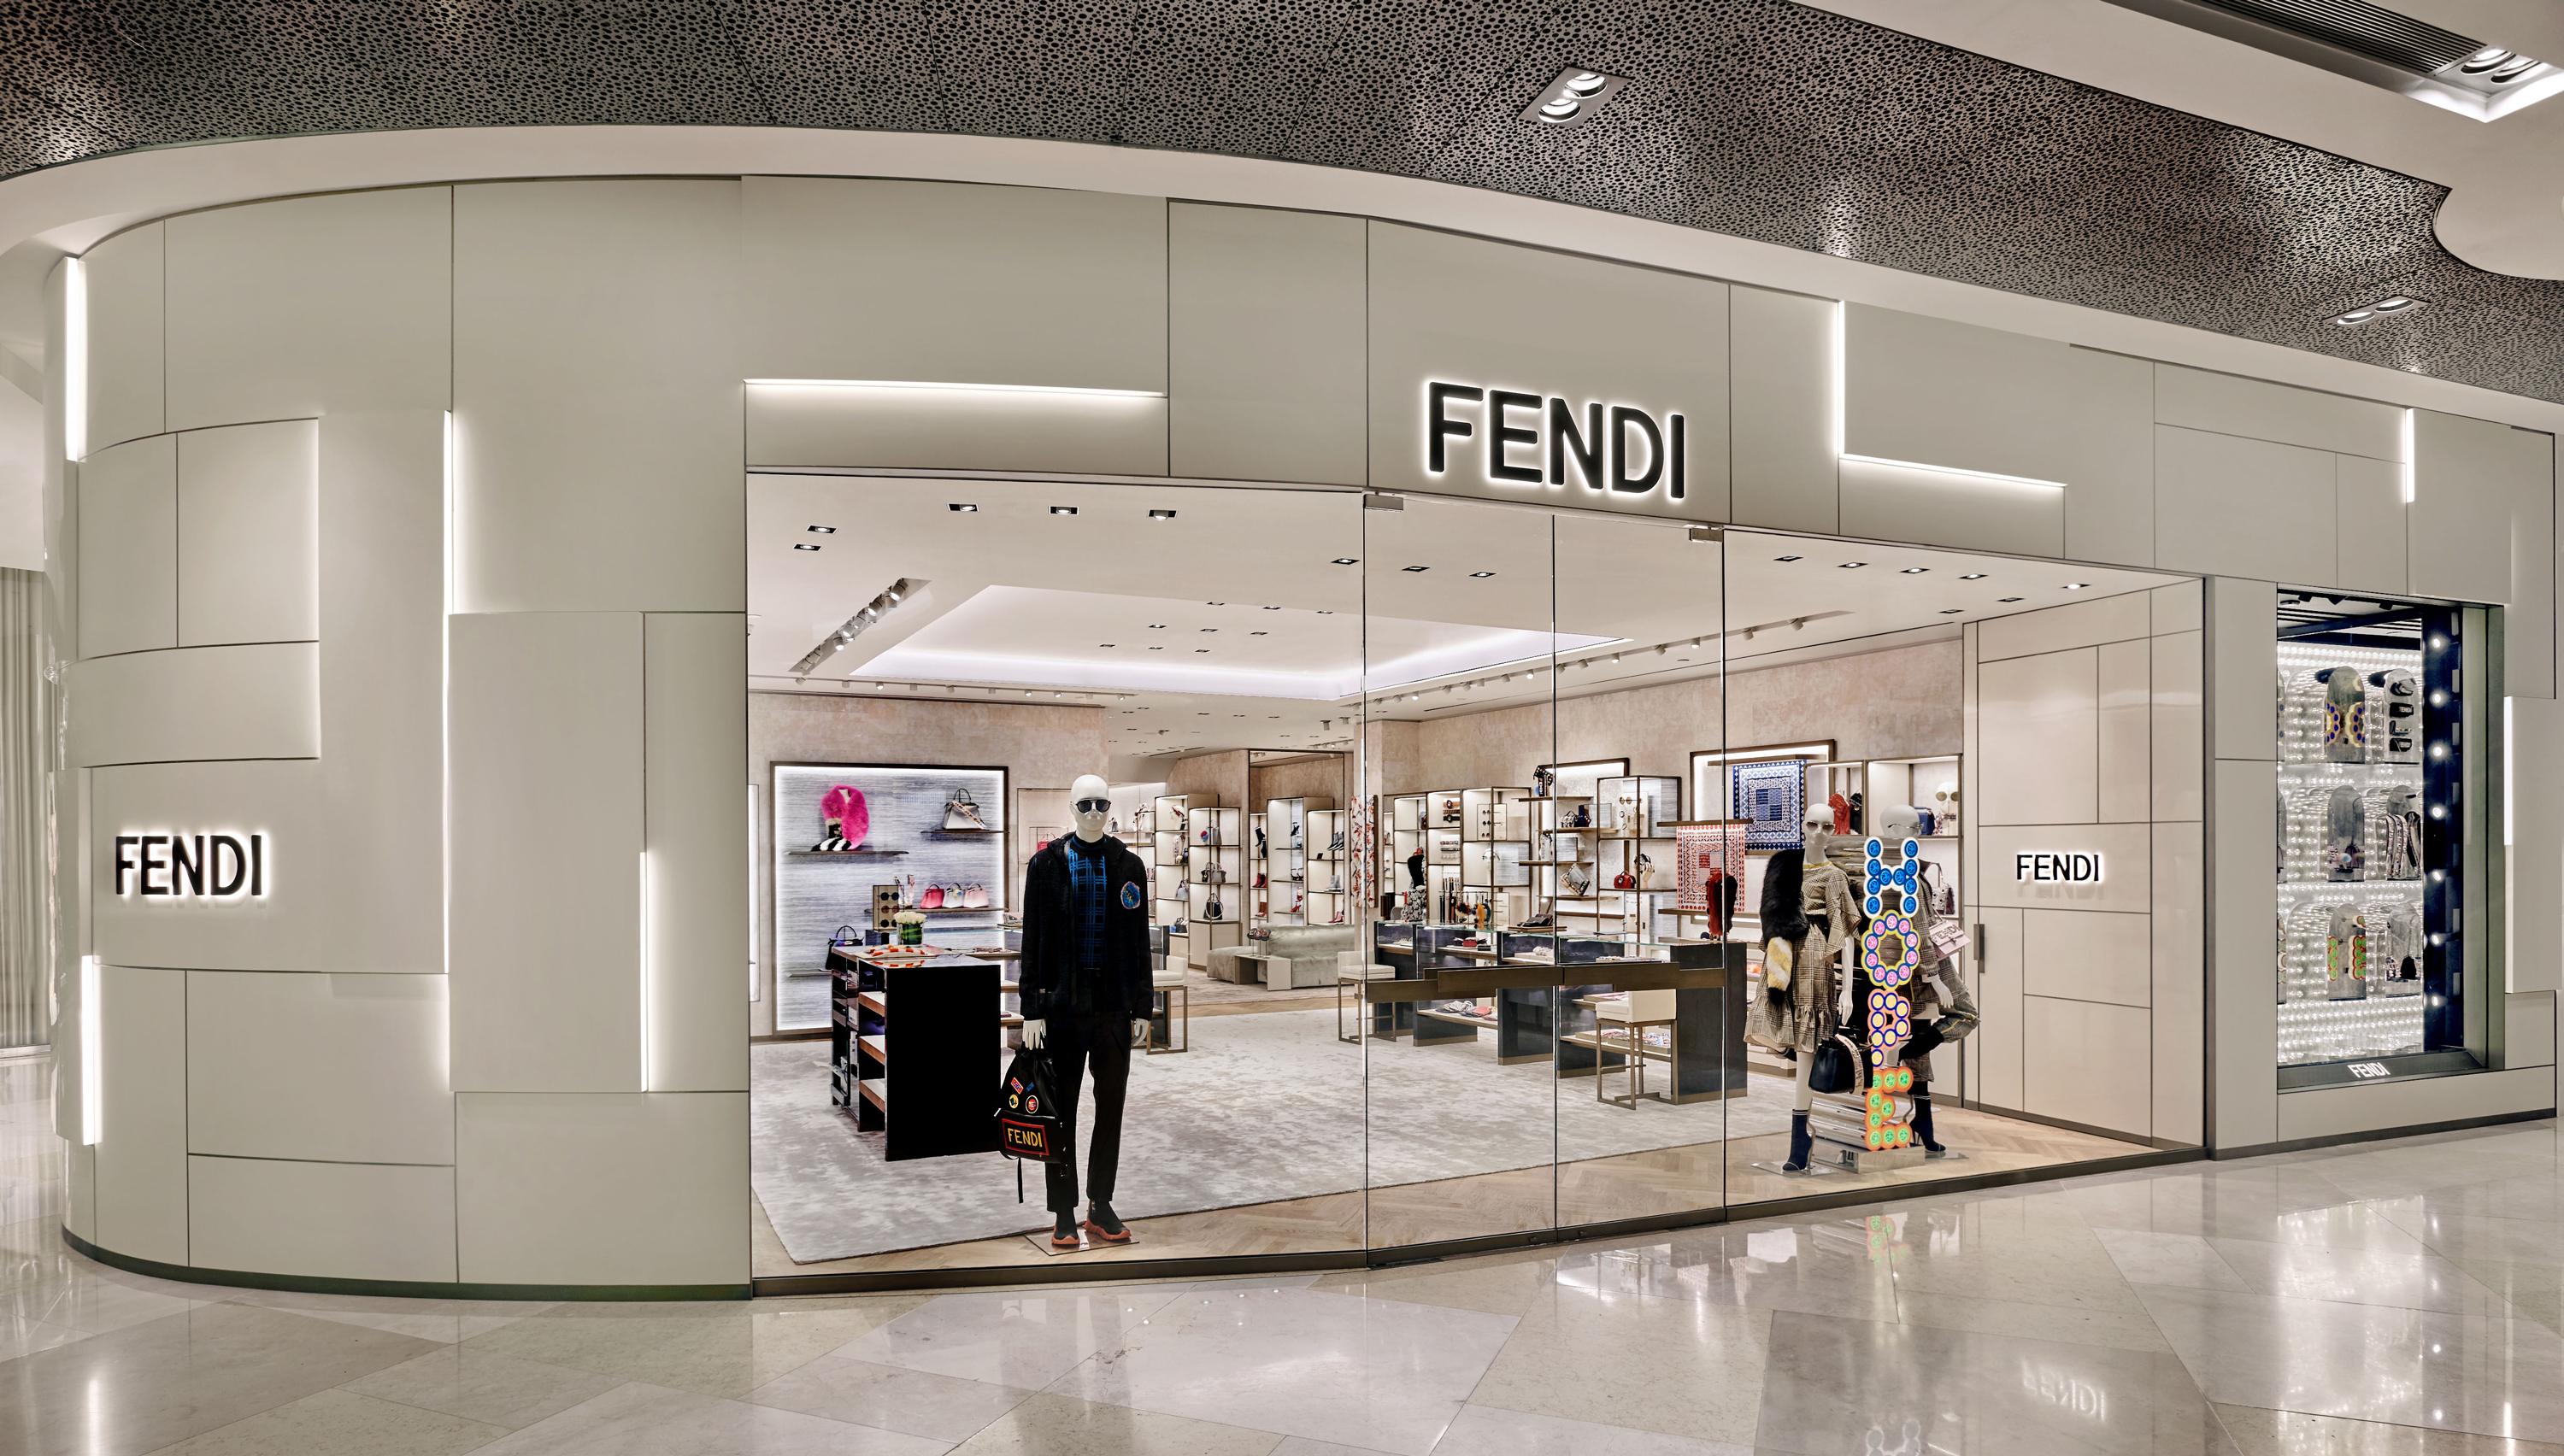 fendi reveals its new ion orchard boutique and flies in the fendi kiosk